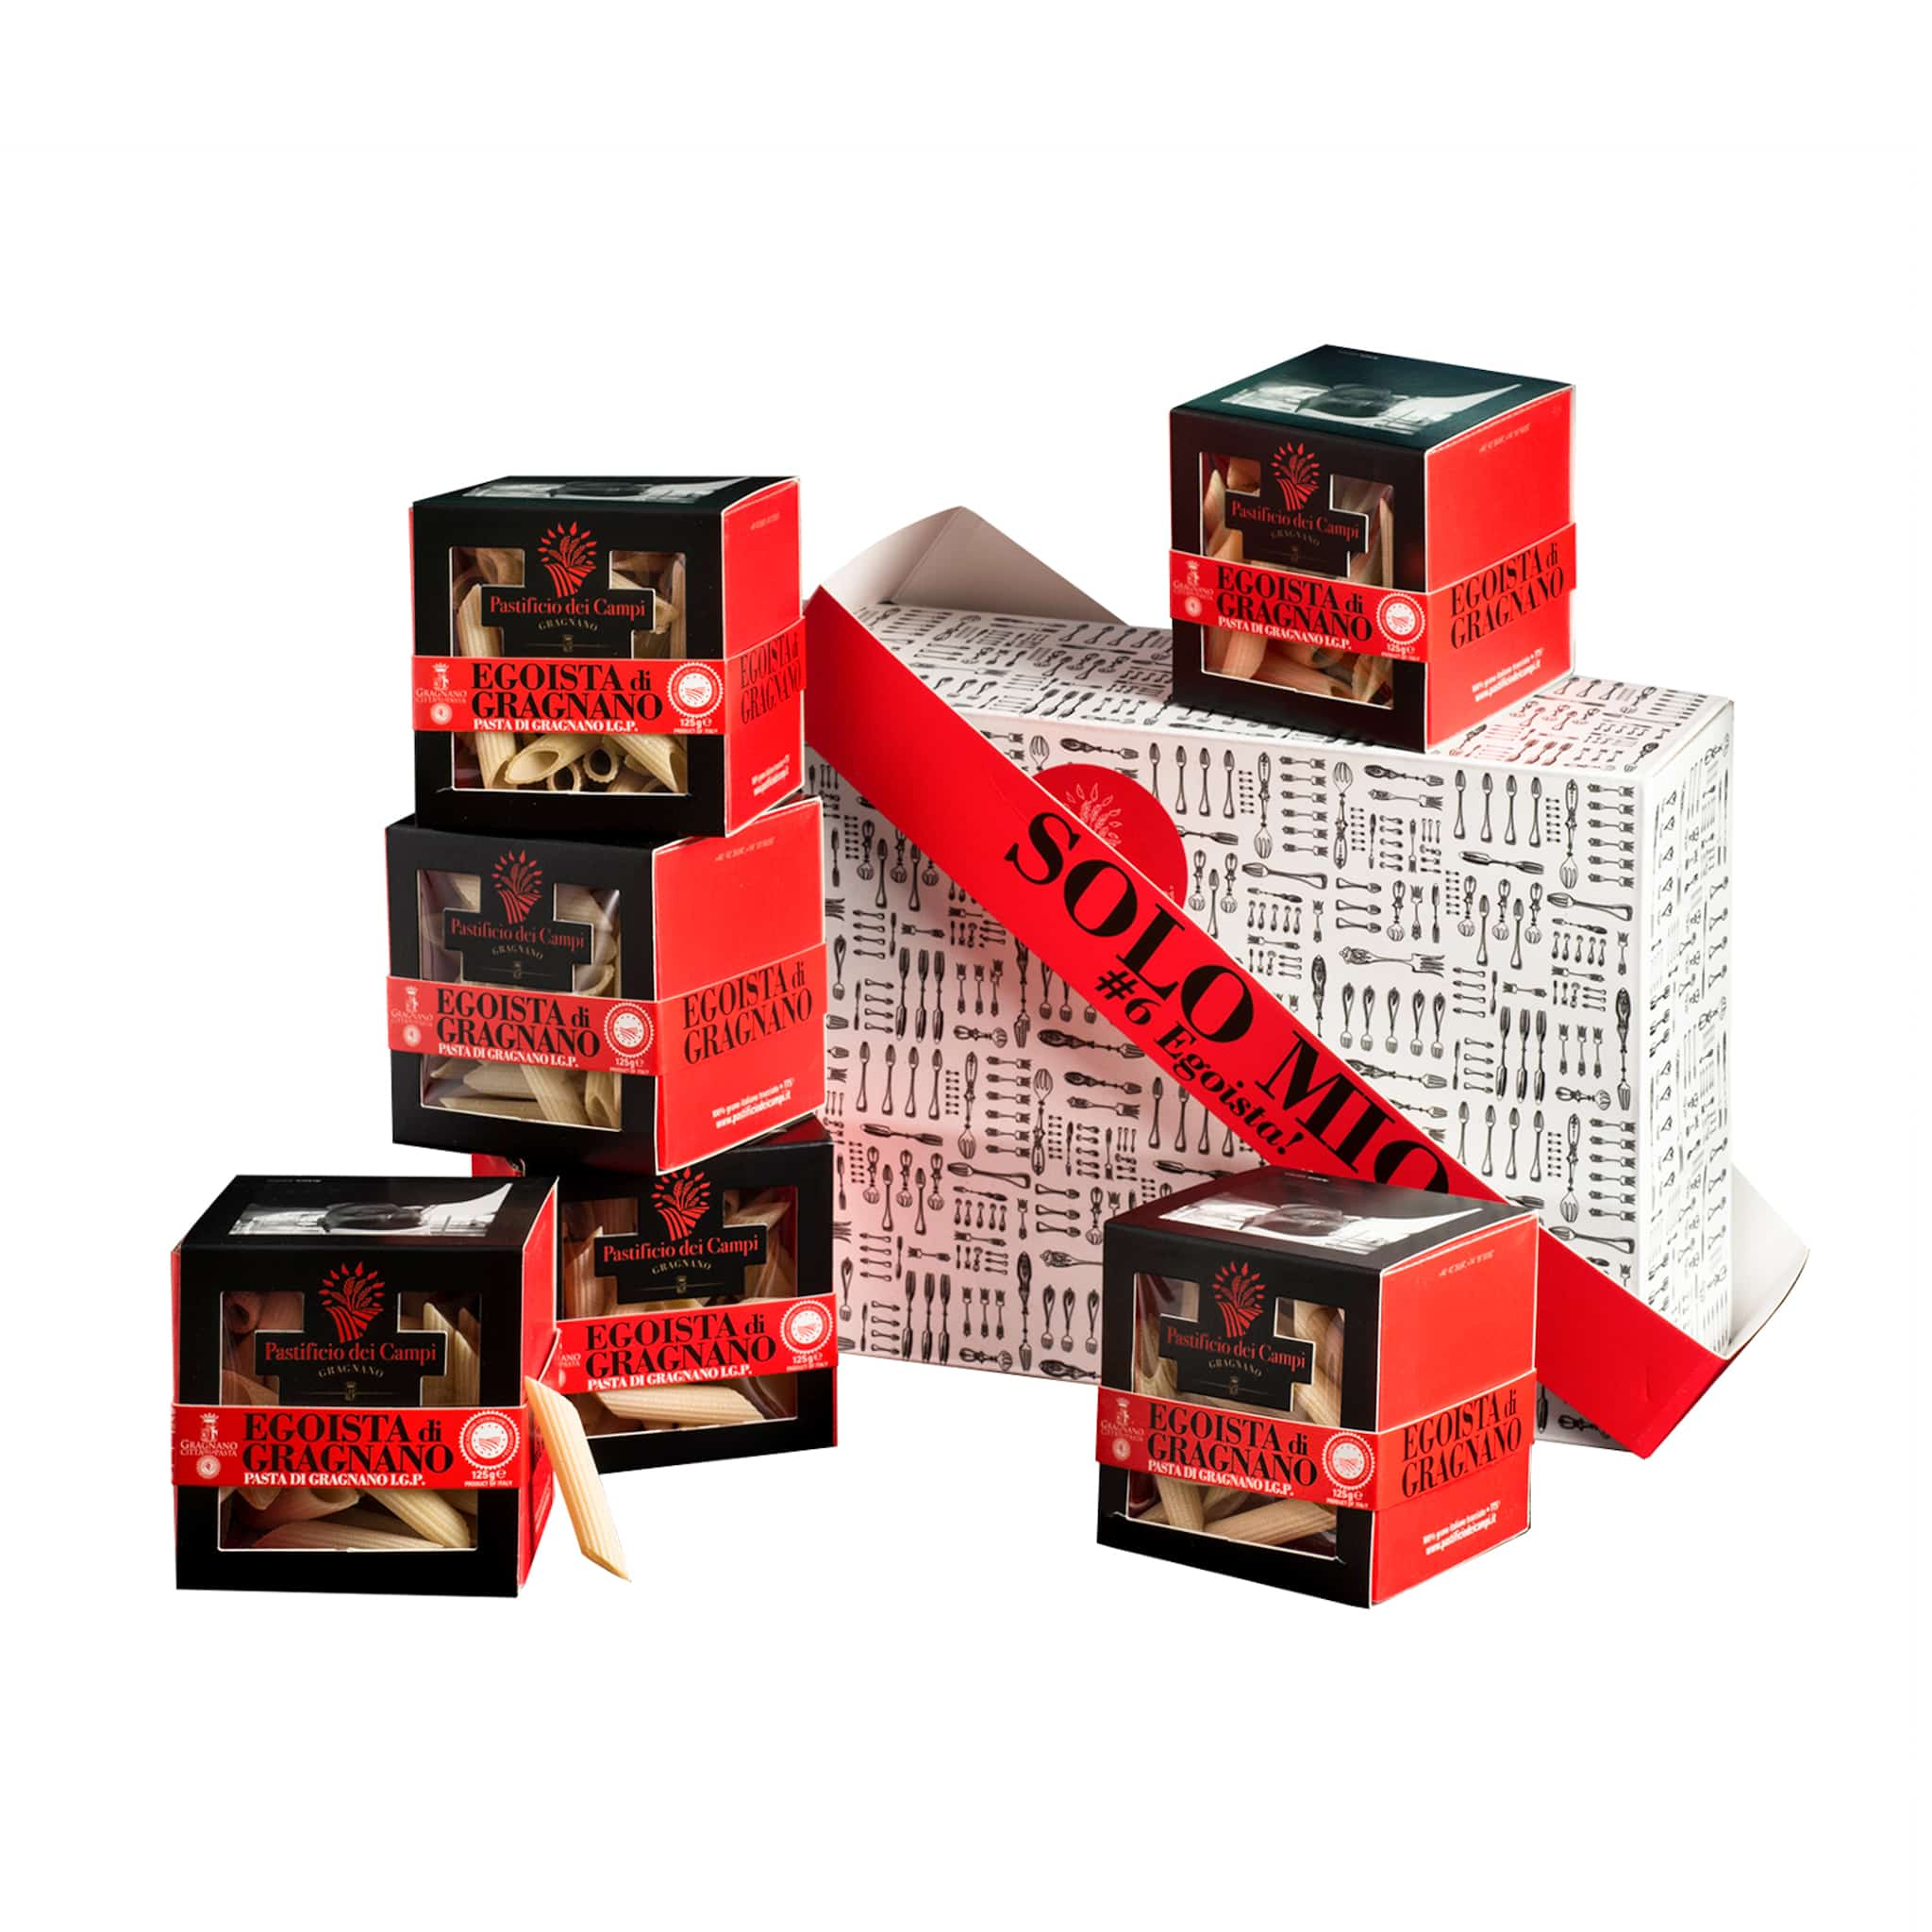 Pastificio dei Campi Solo Mio Pasta di Gragnano gift set 750g IGP Dried Durum Wheat Pasta Italian Cooking